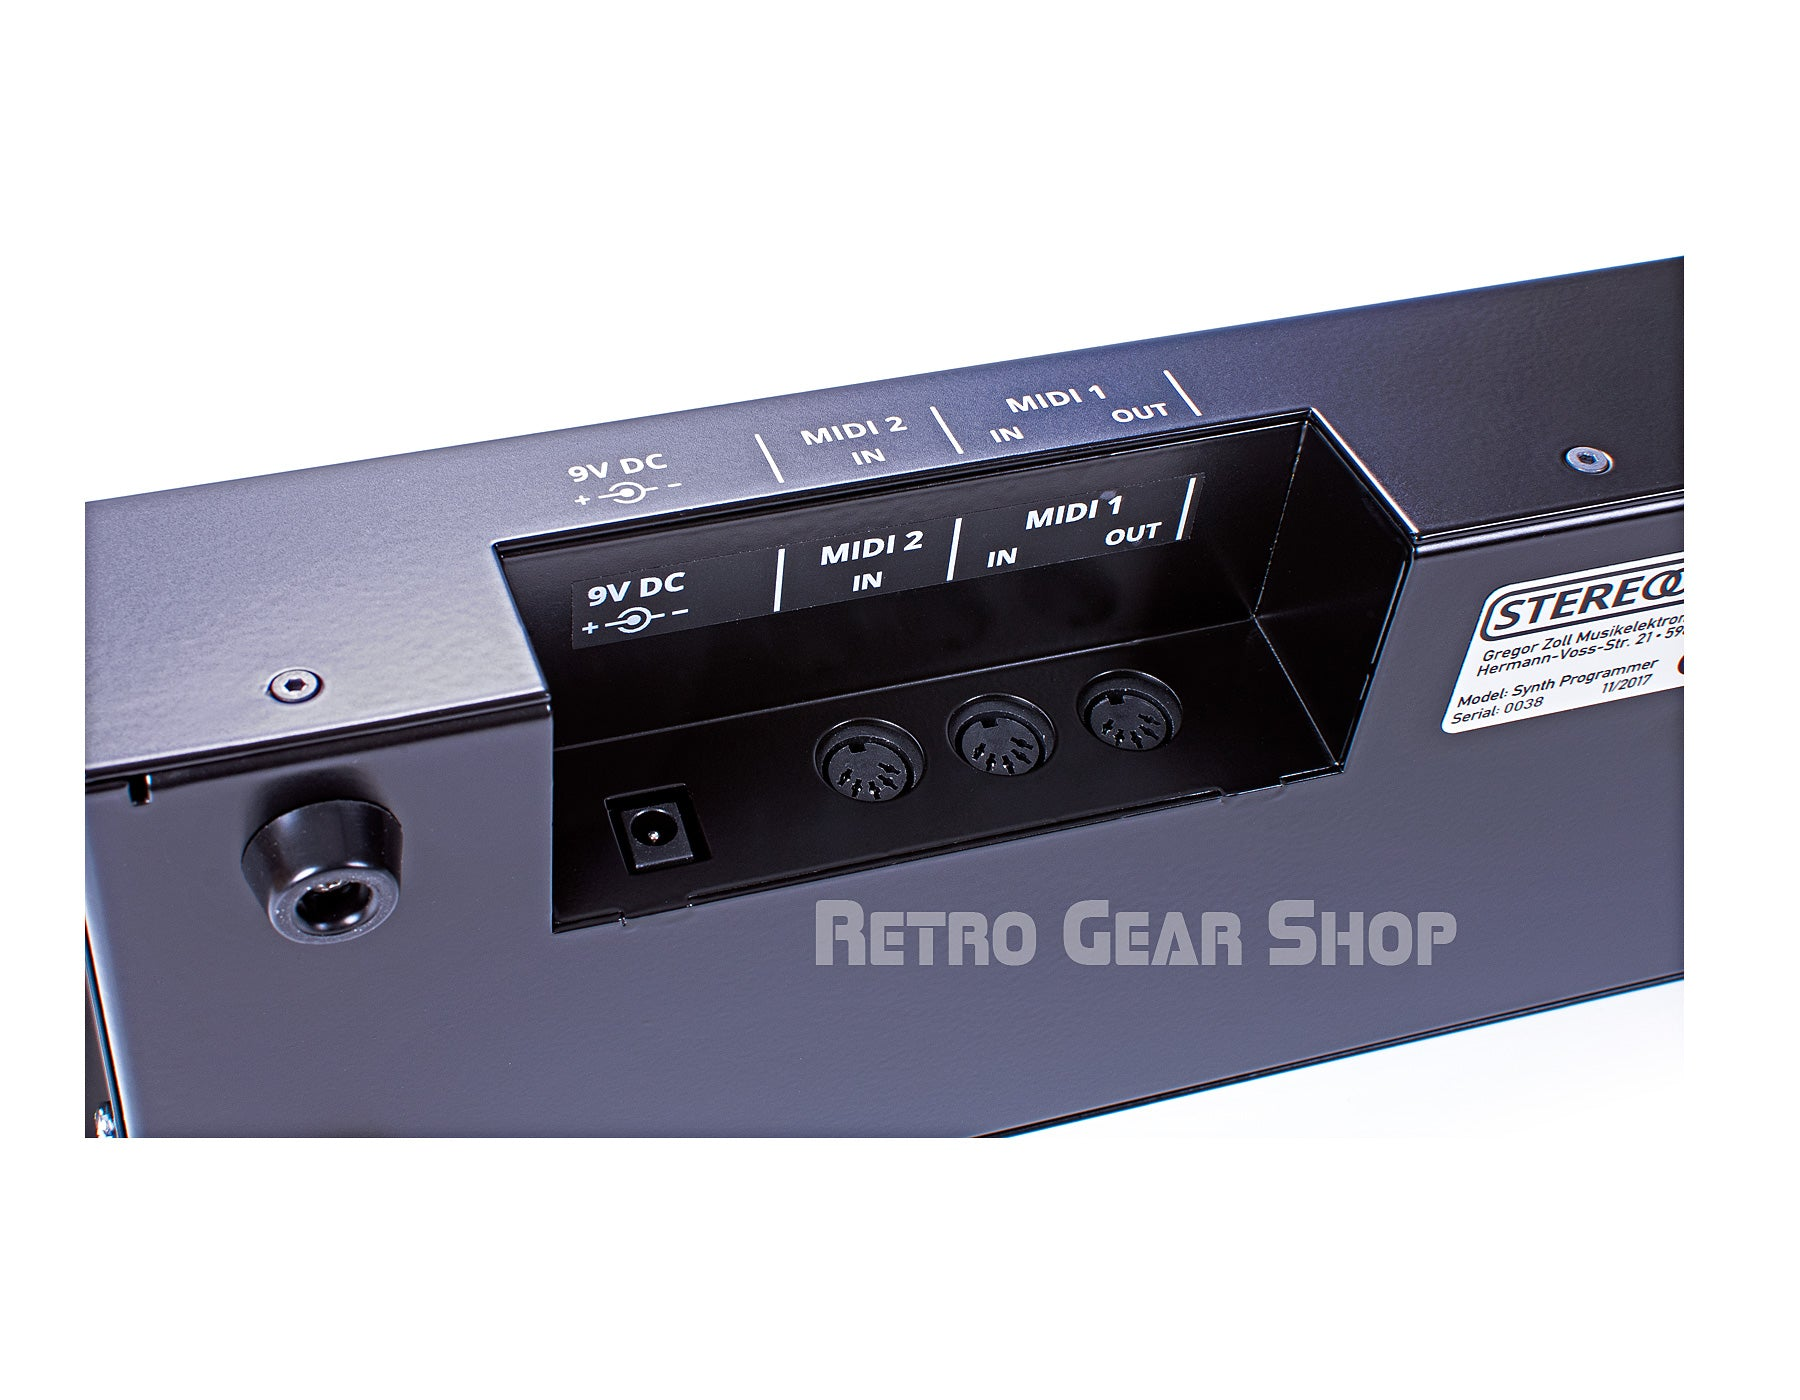 Stereoping Programmer Roland MKS-80 Rear Connections